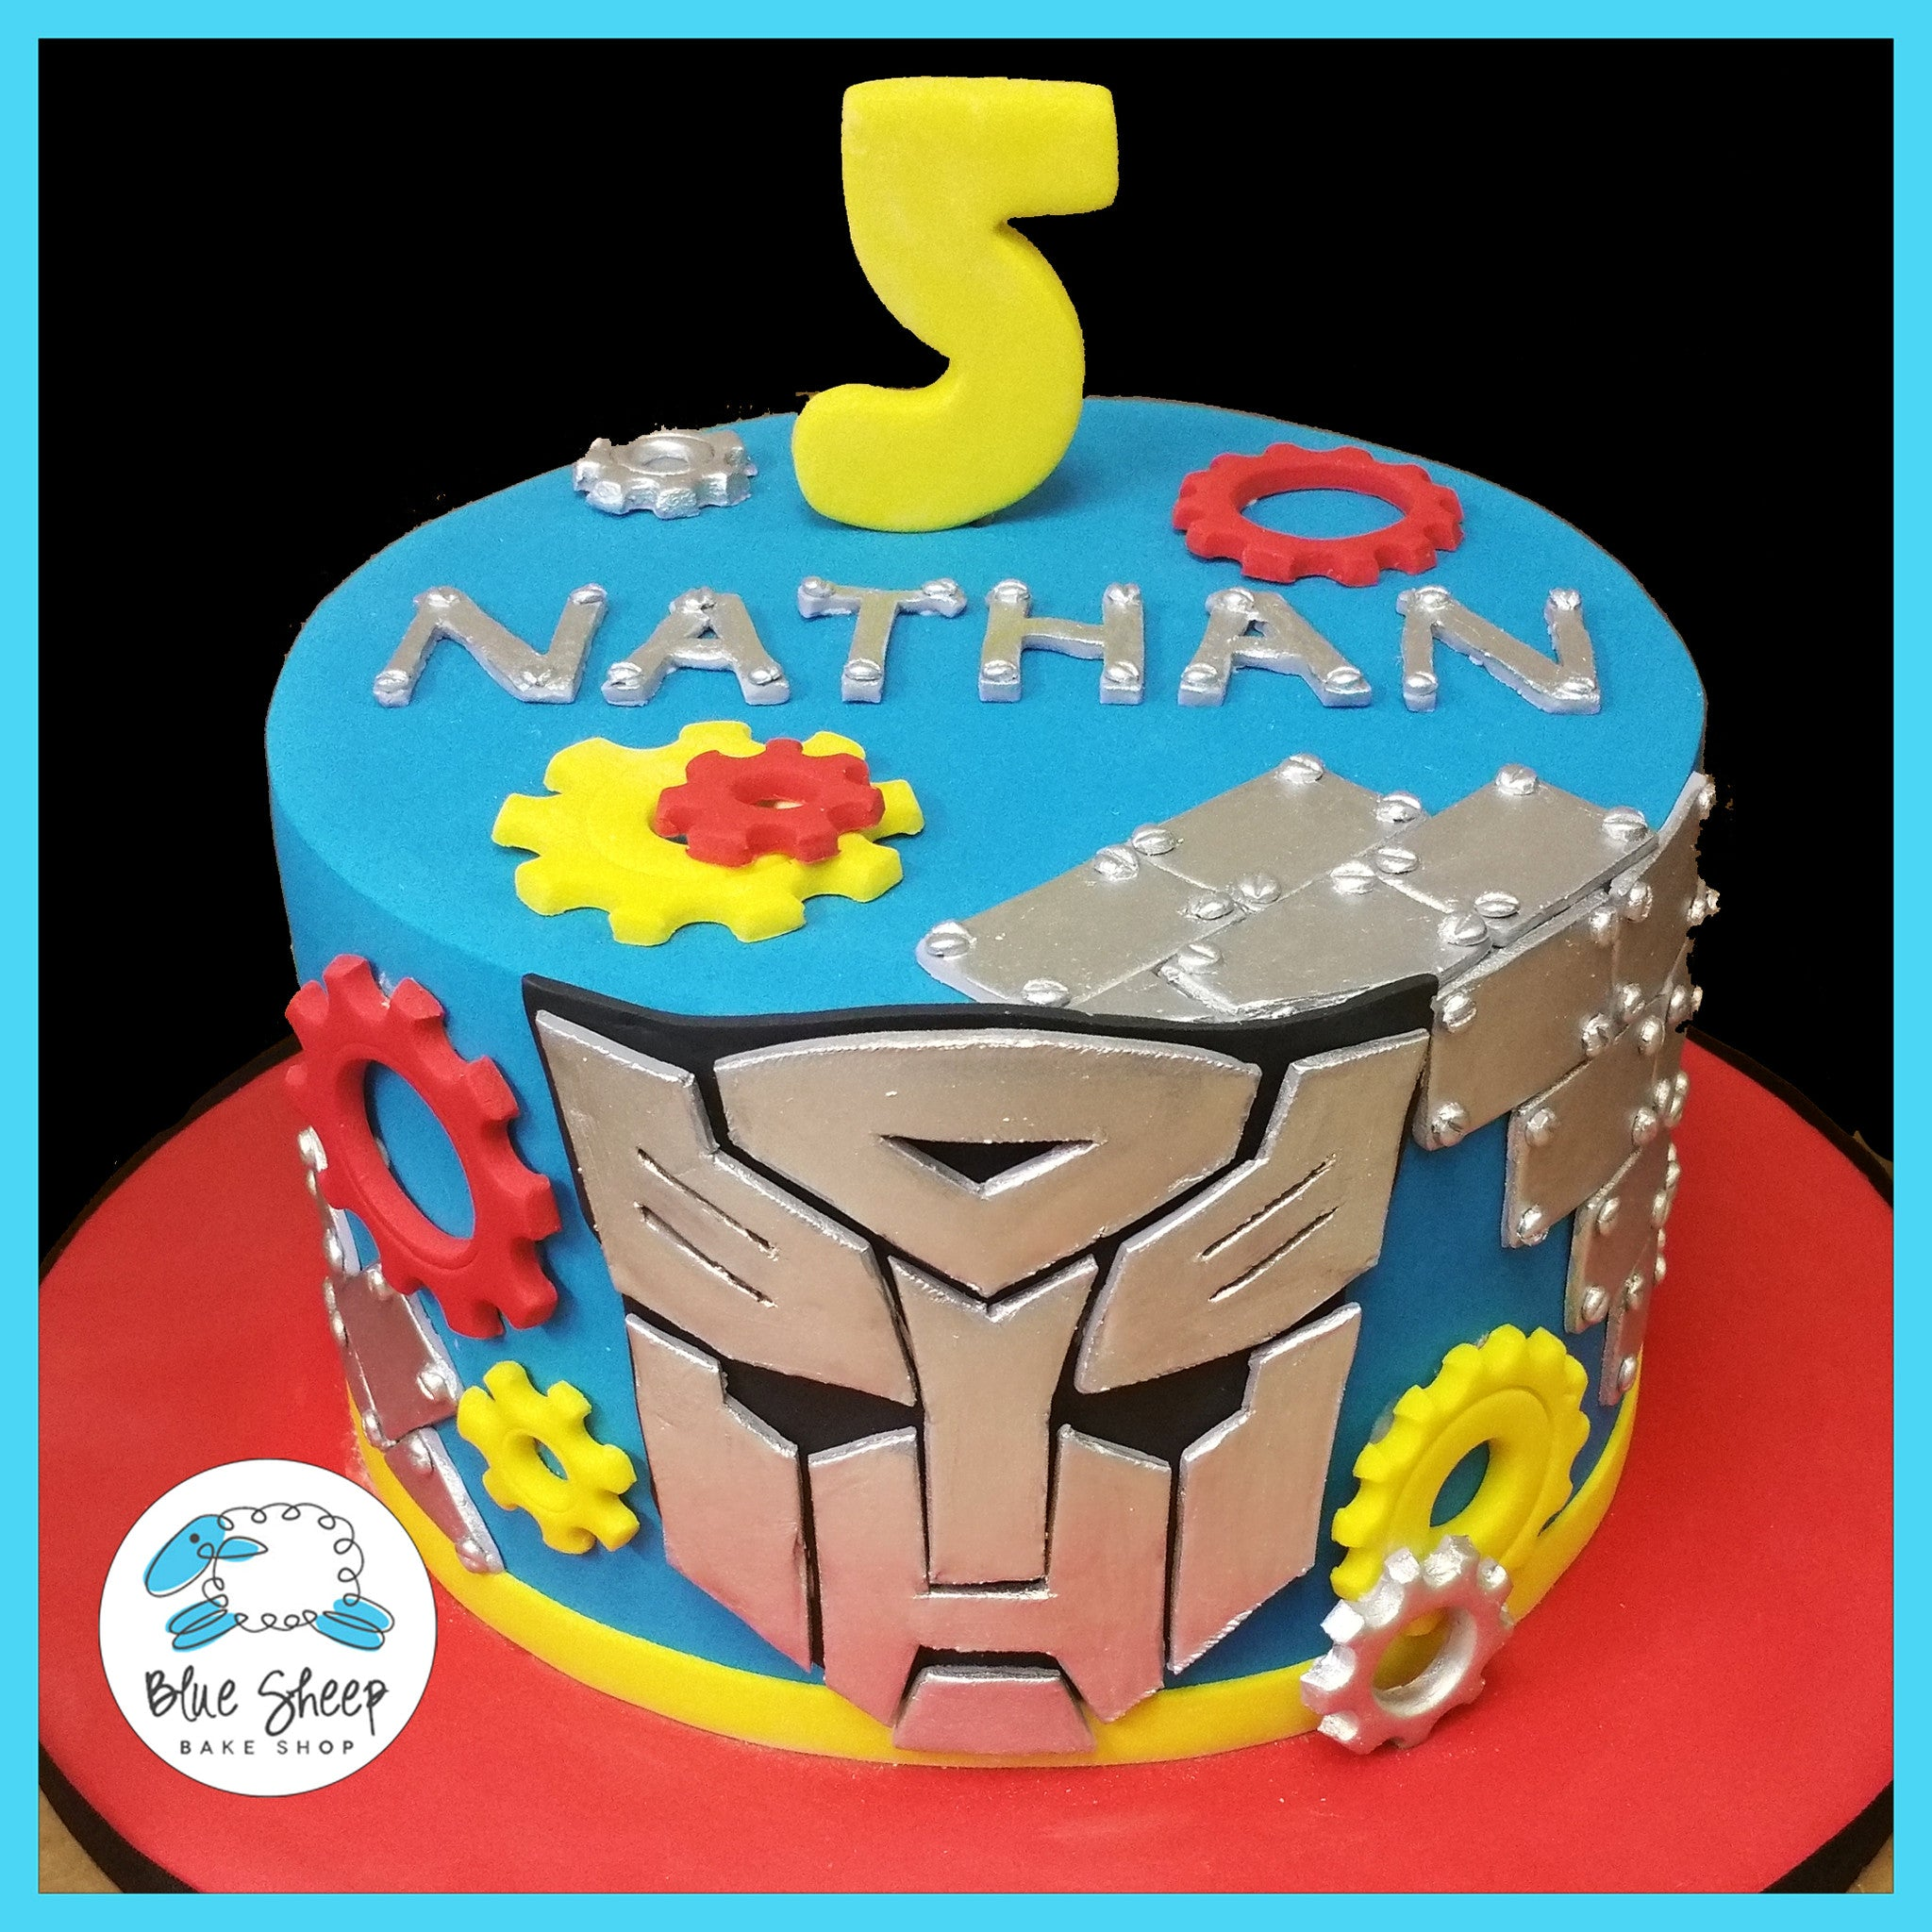 Awesome Transformers Birthday Cake Blue Sheep Bake Shop Funny Birthday Cards Online Elaedamsfinfo